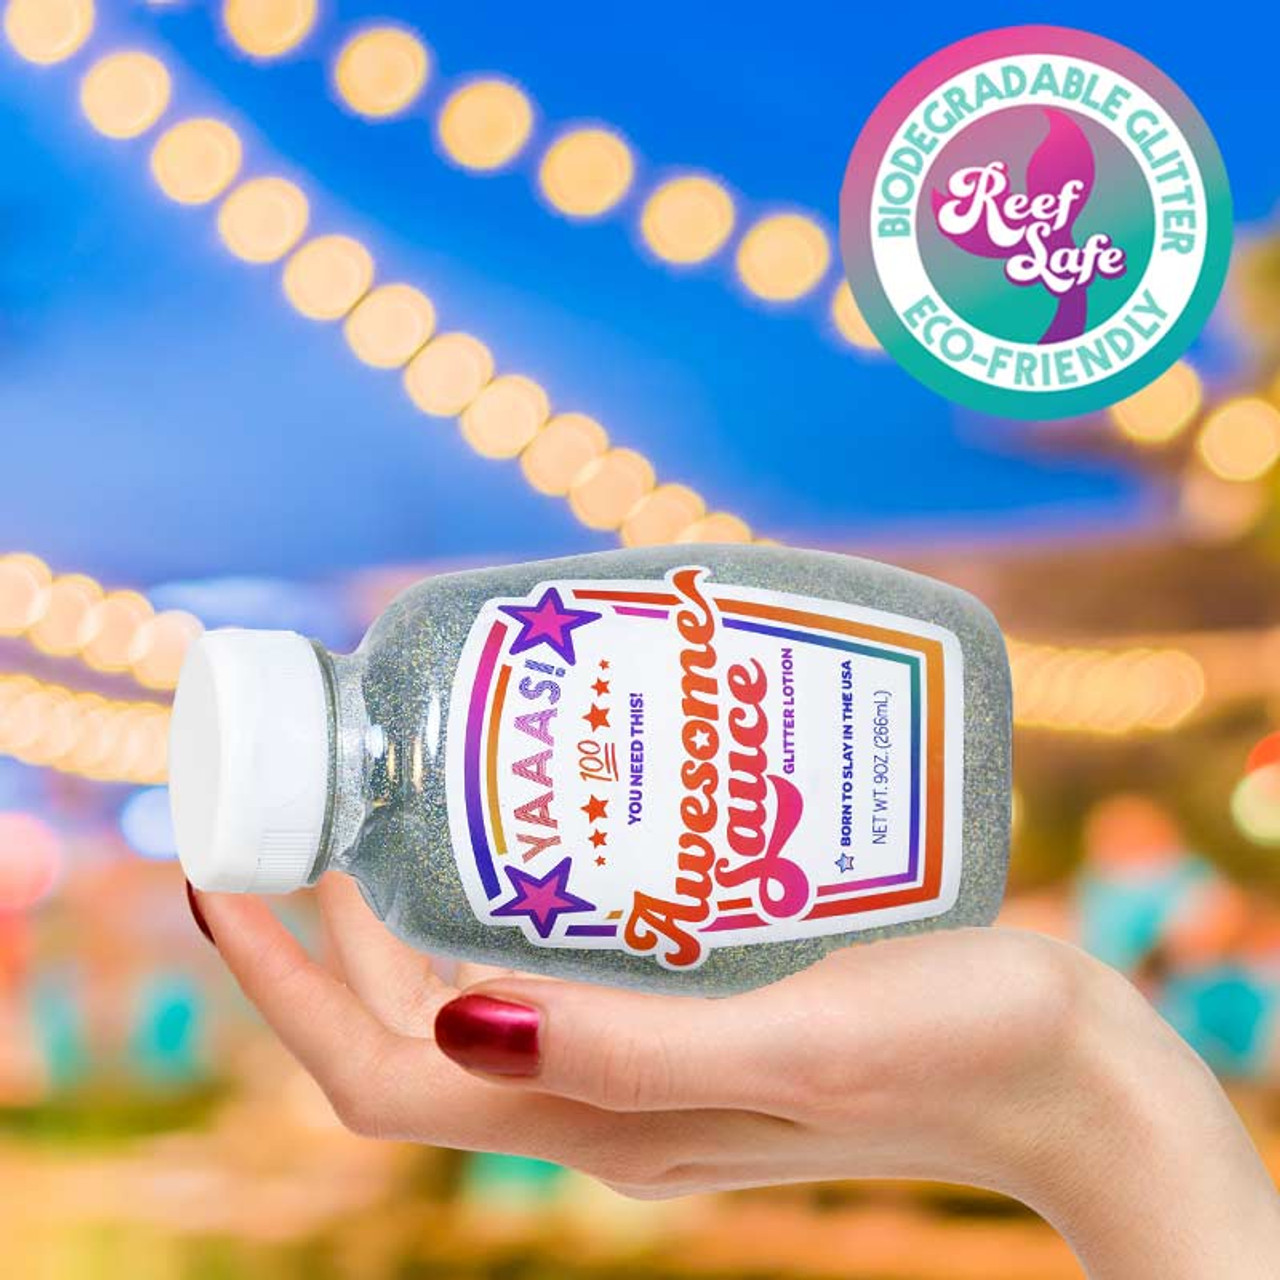 Awesome Sauce Holographic Glitter Body Lotion